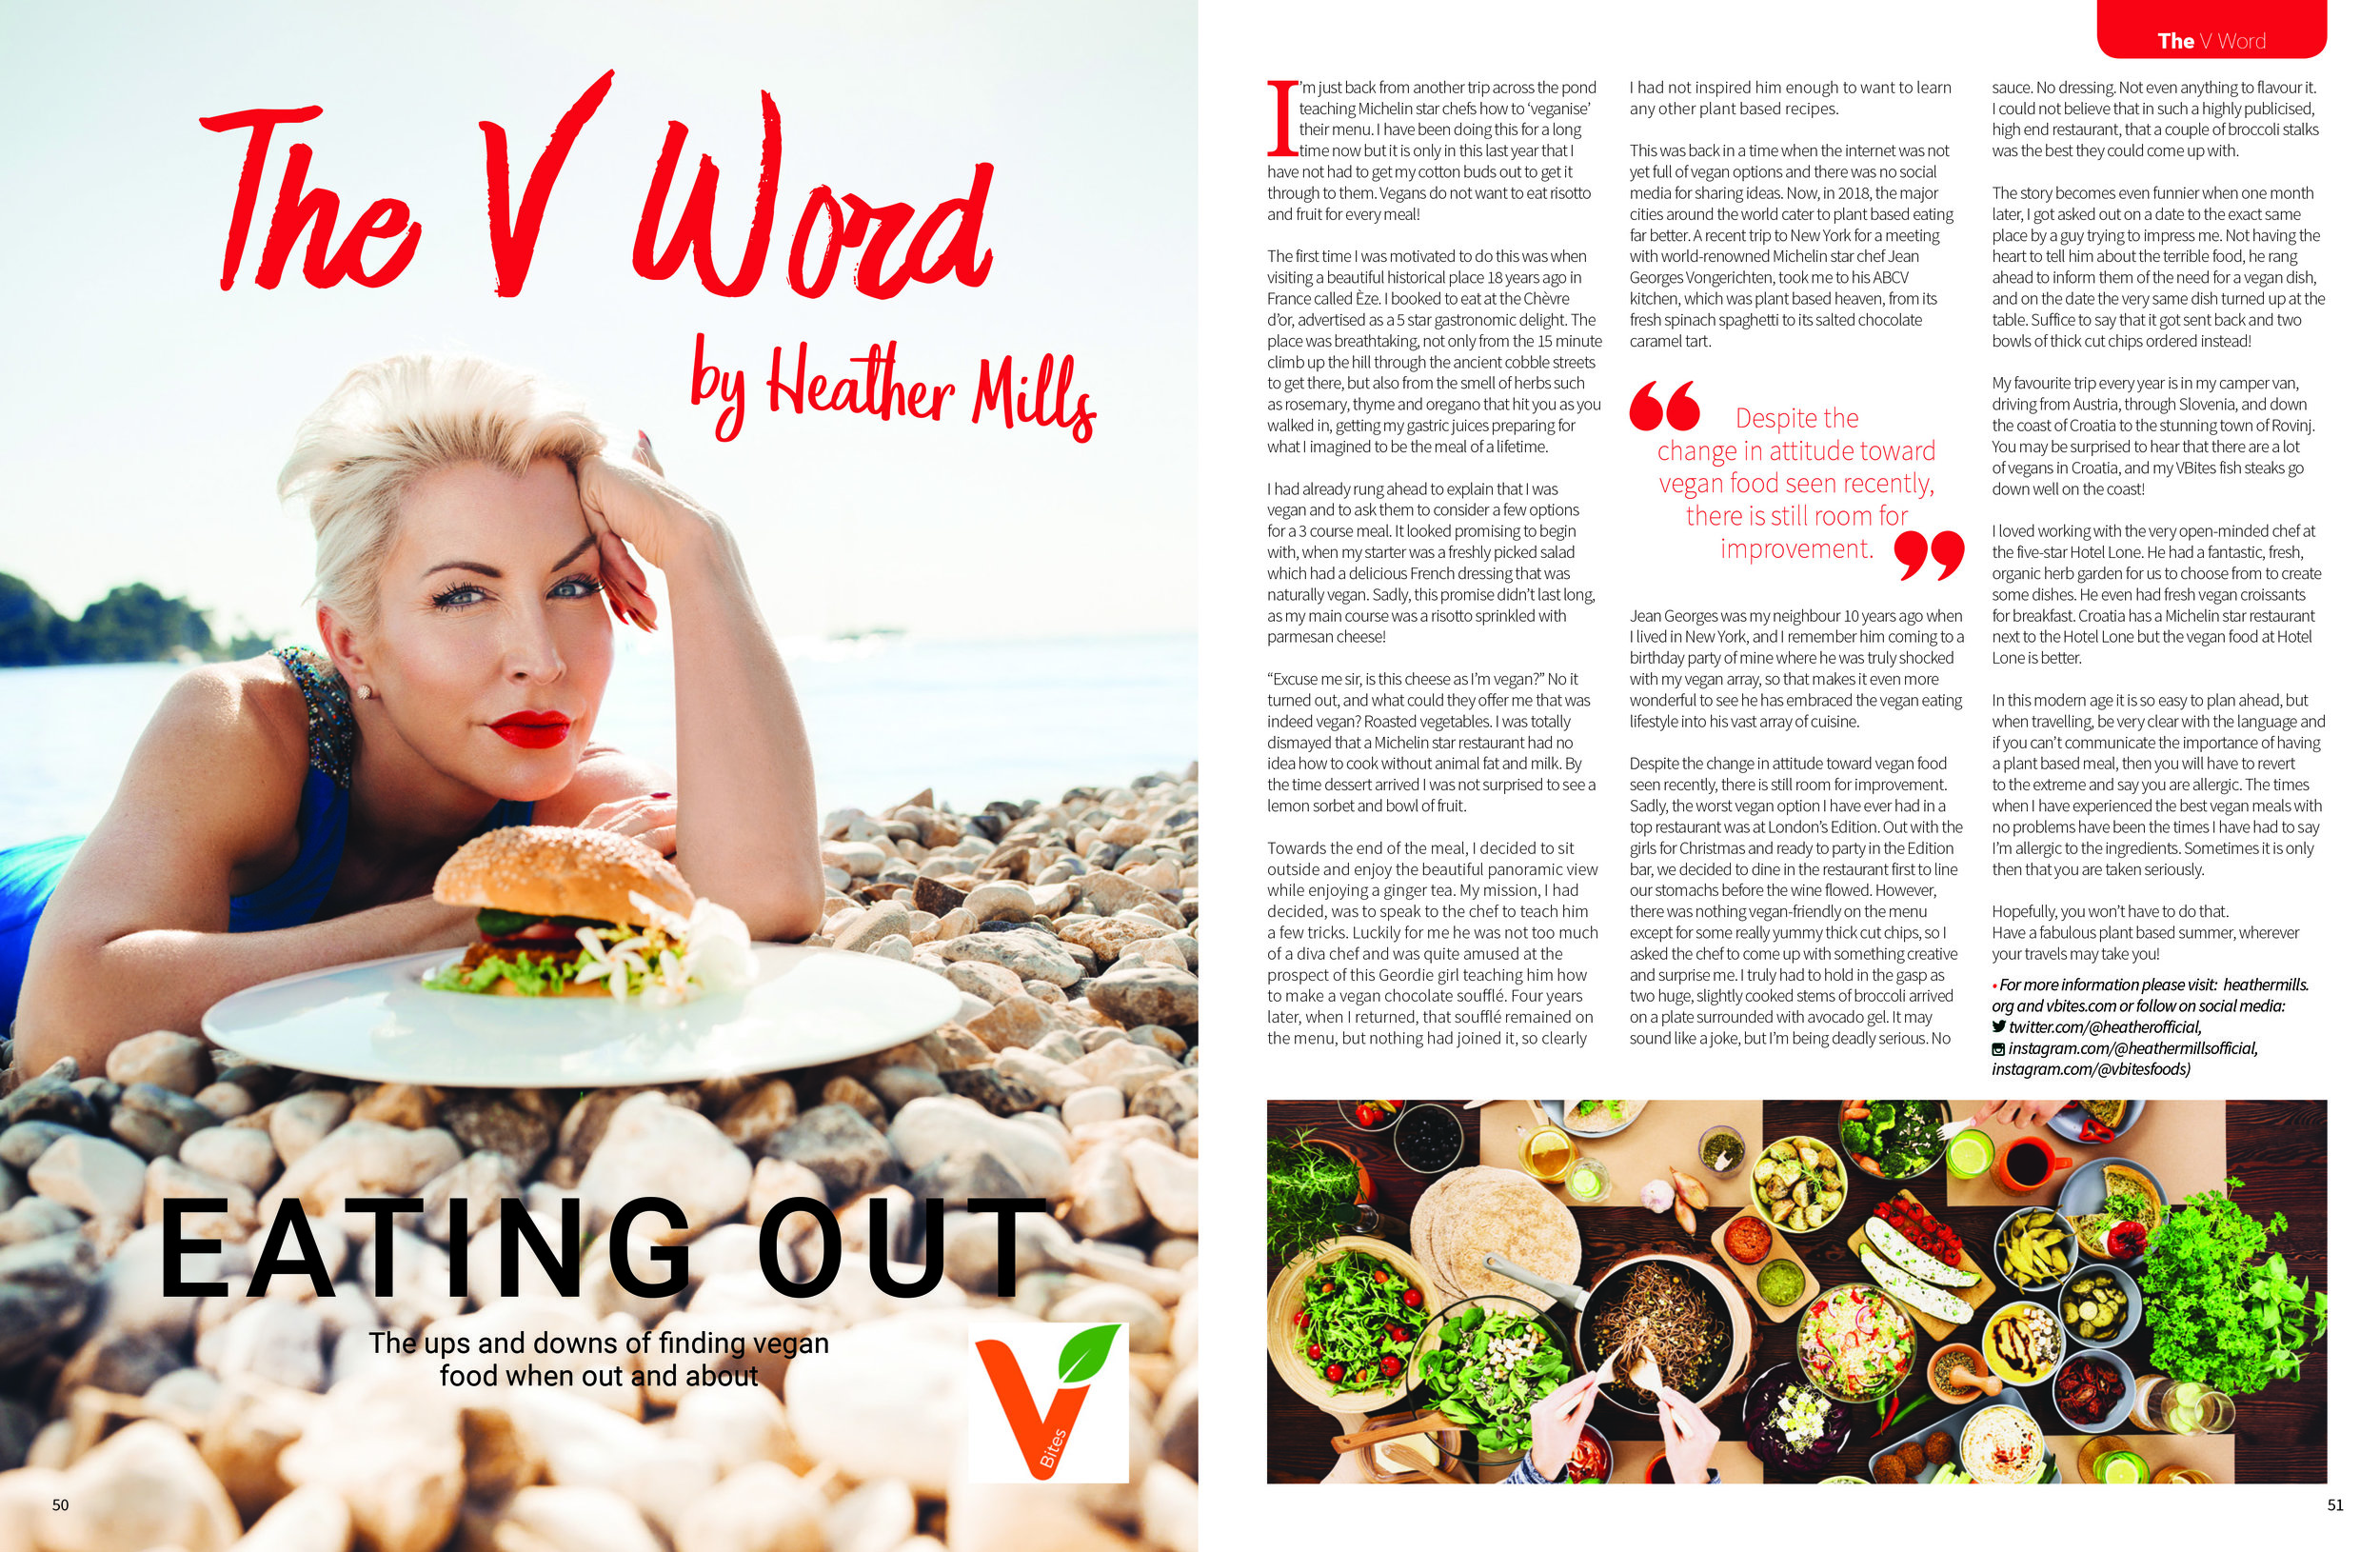 PlantBased June Issue 7 - Eating Out.jpg